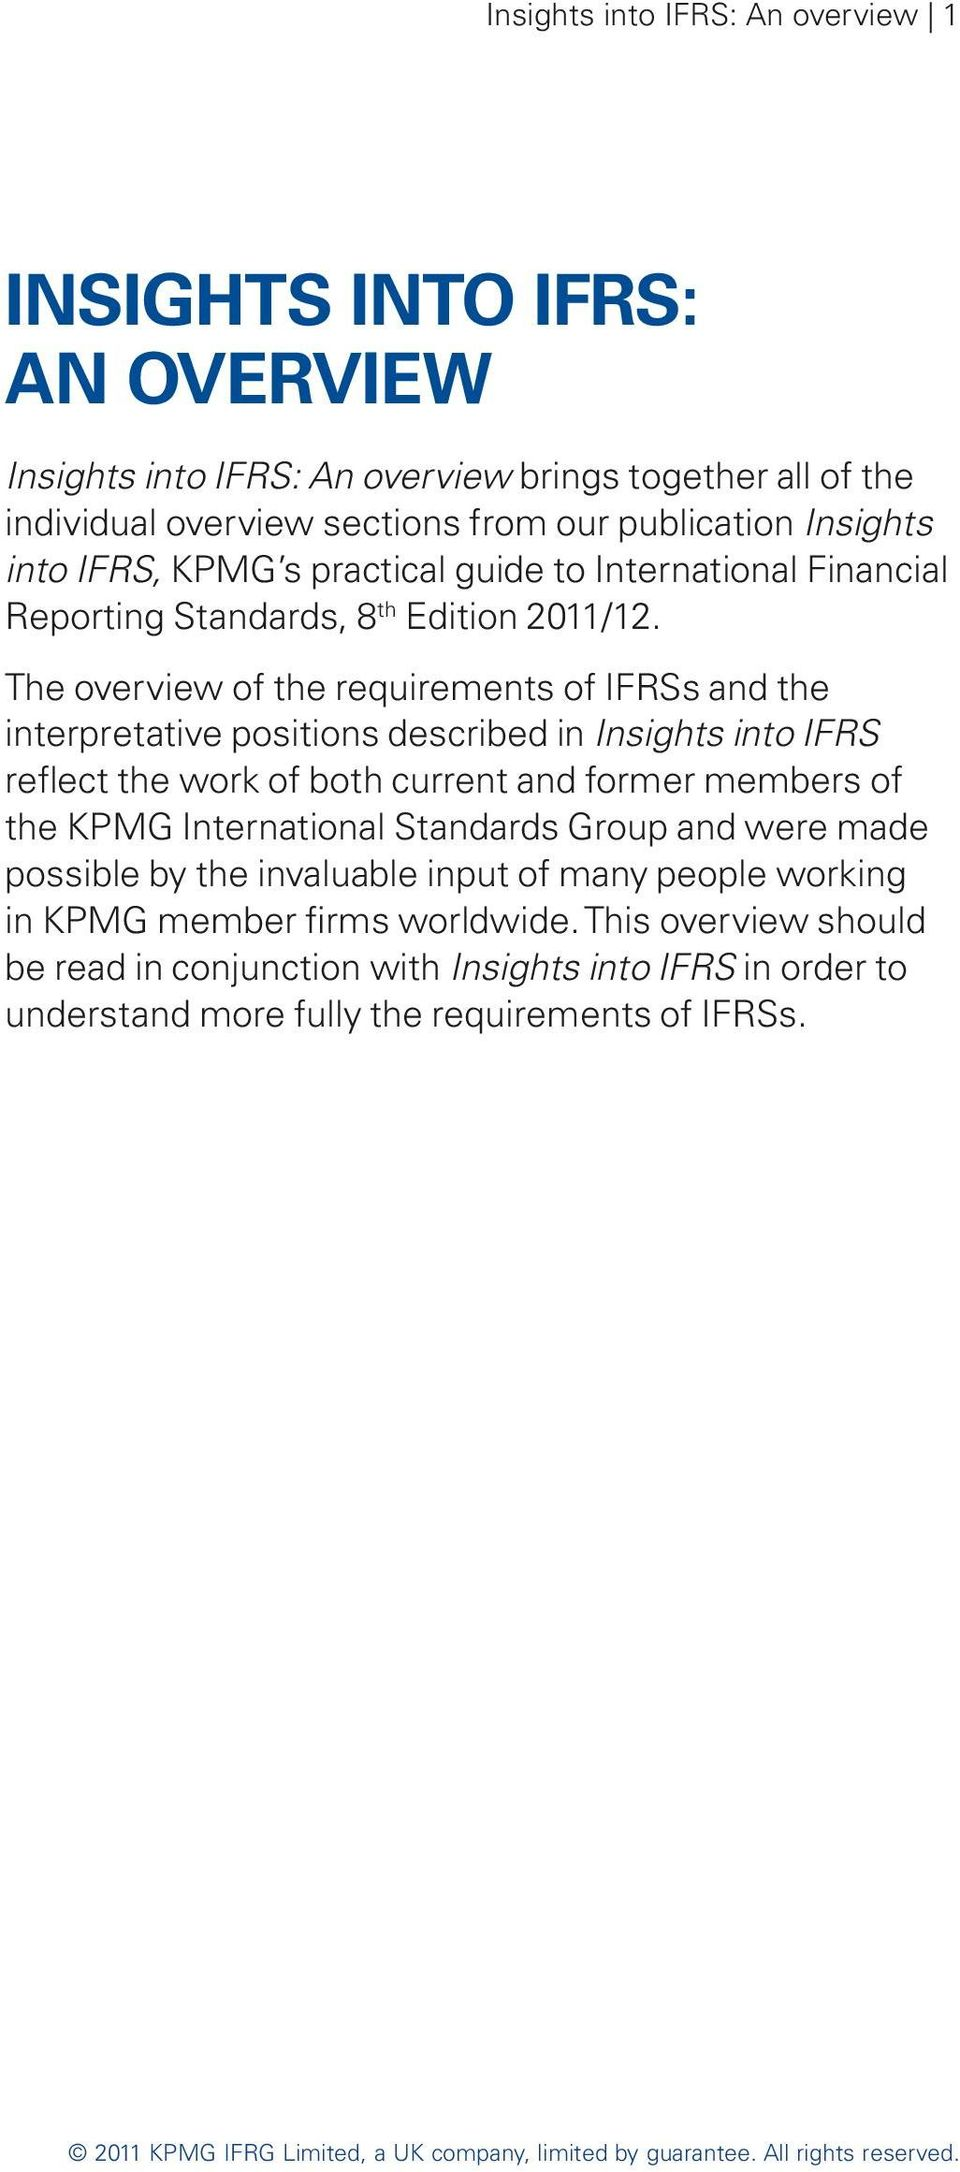 The overview of the requirements of IFRSs and the interpretative positions described in Insights into IFRS reflect the work of both current and former members of the KPMG